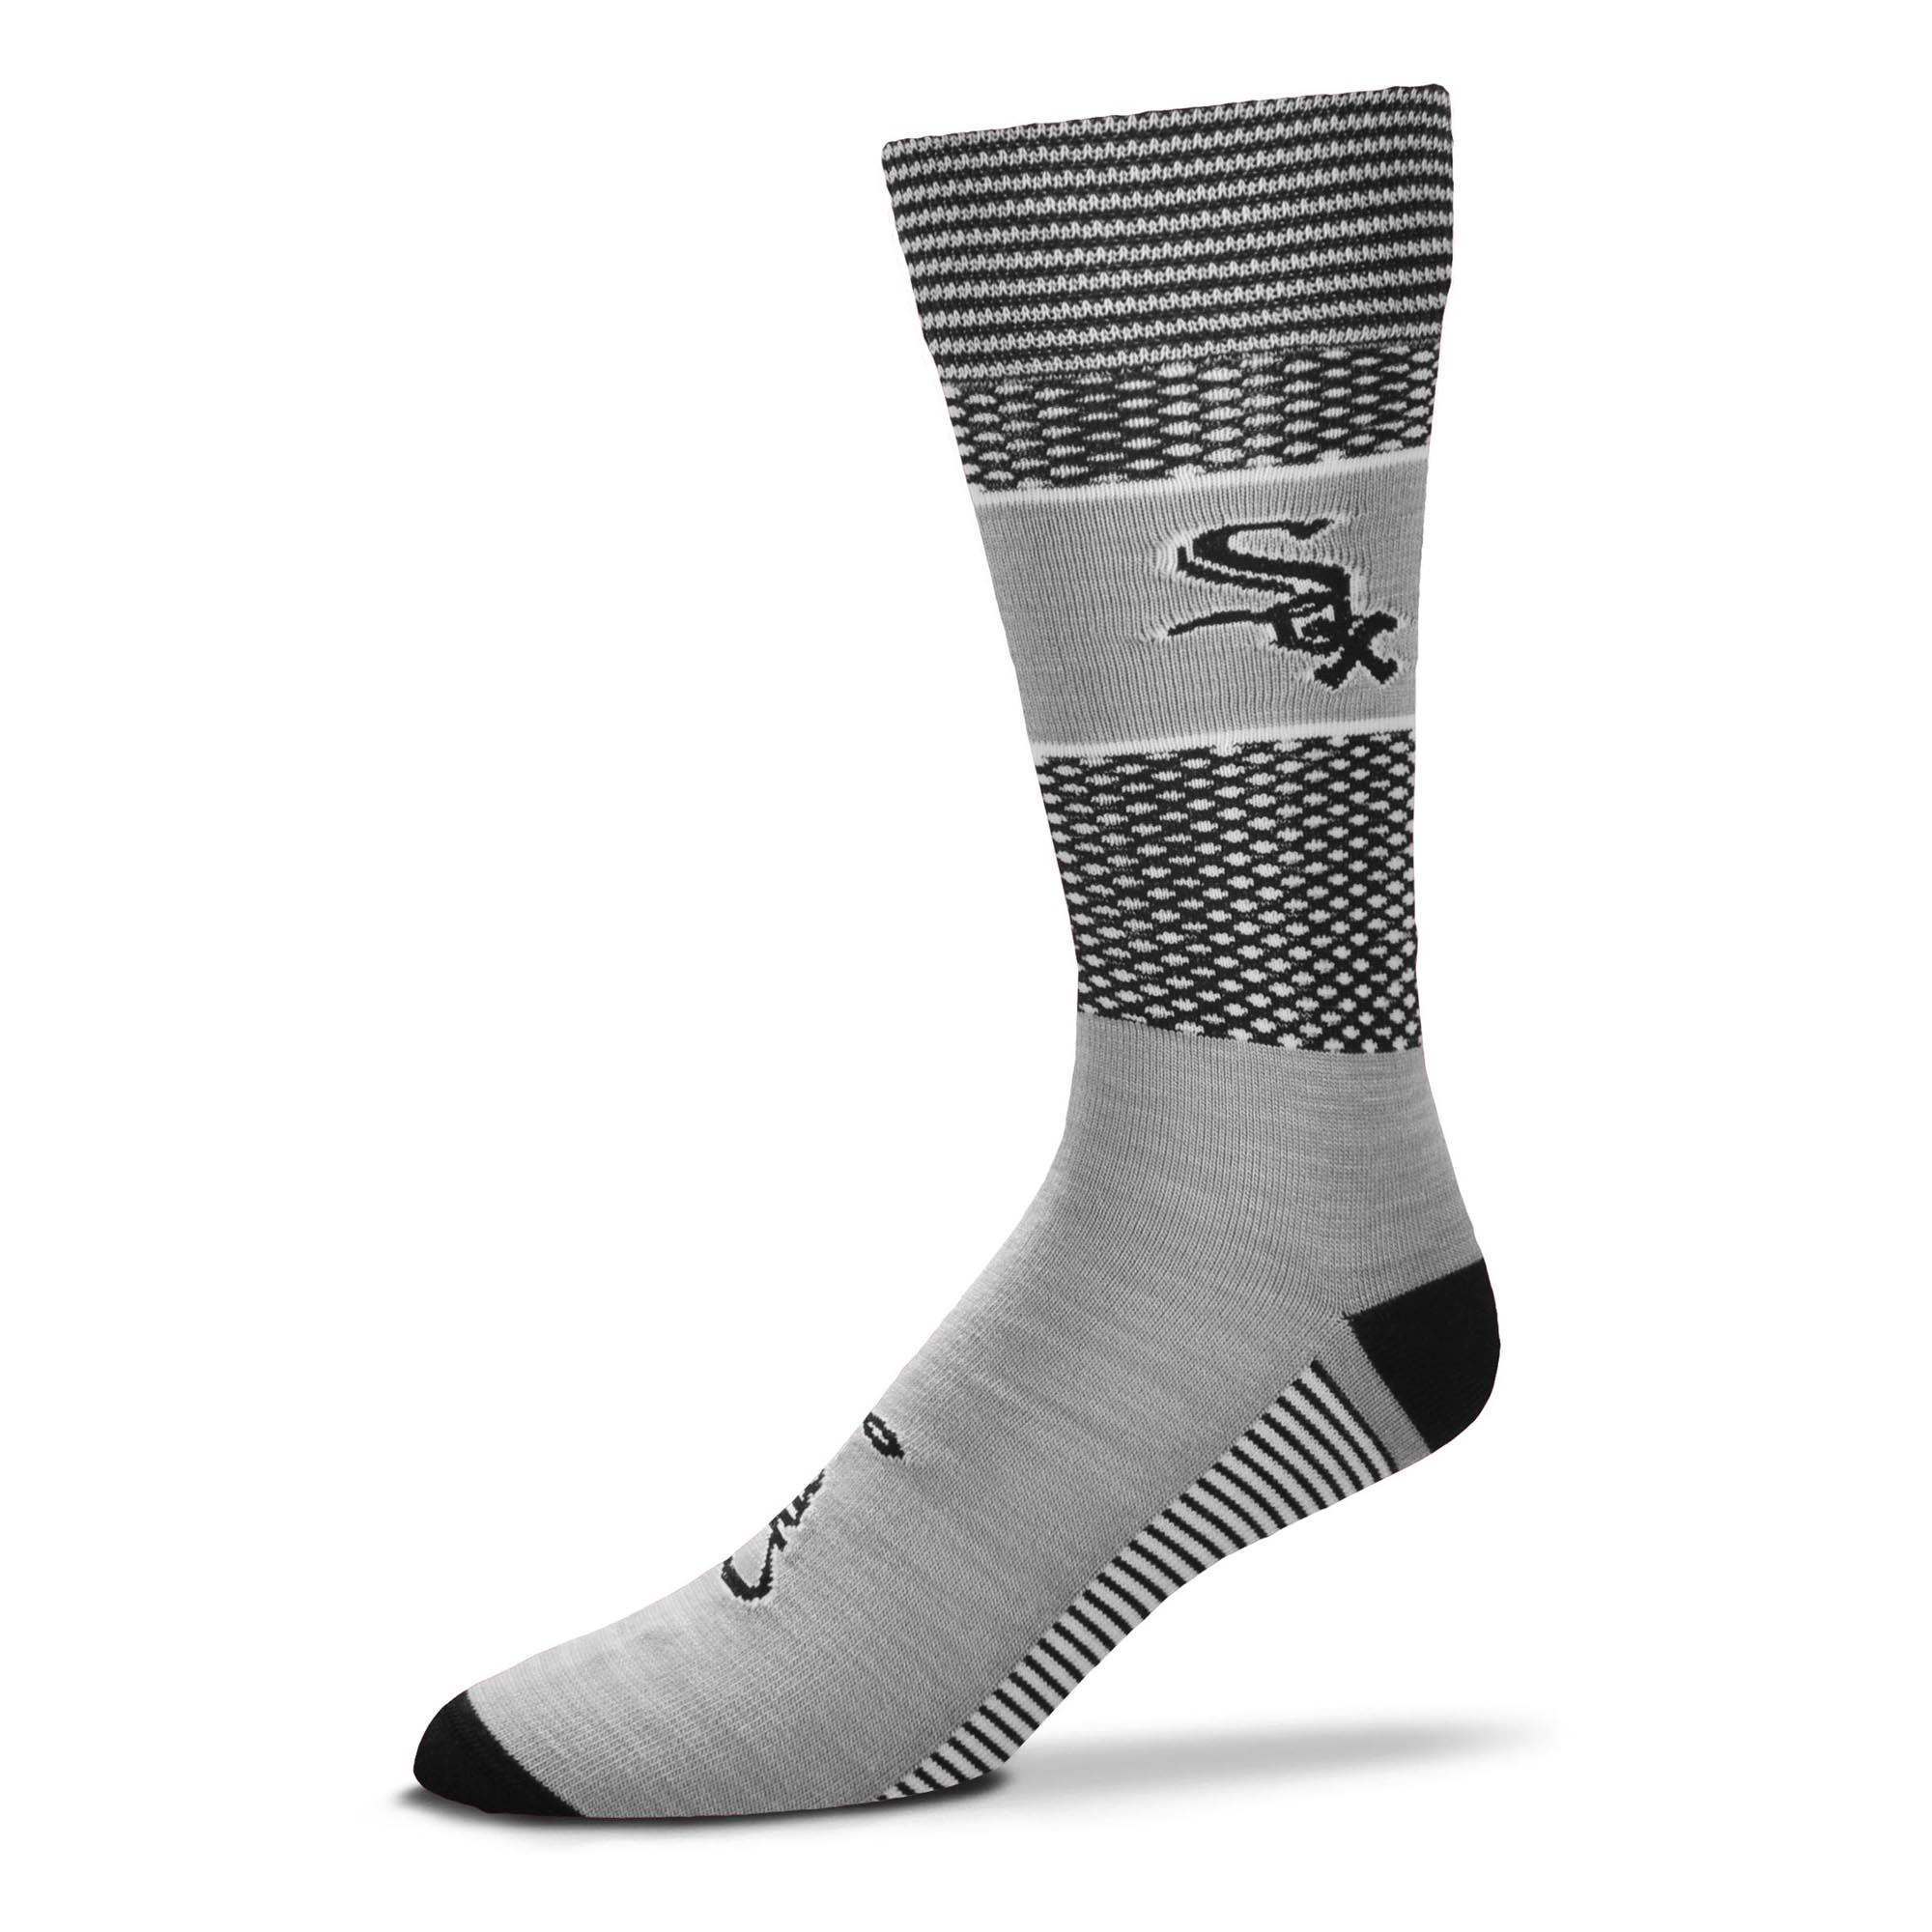 Chicago White Sox For Bare Feet Women's Mojo Crew Socks - M